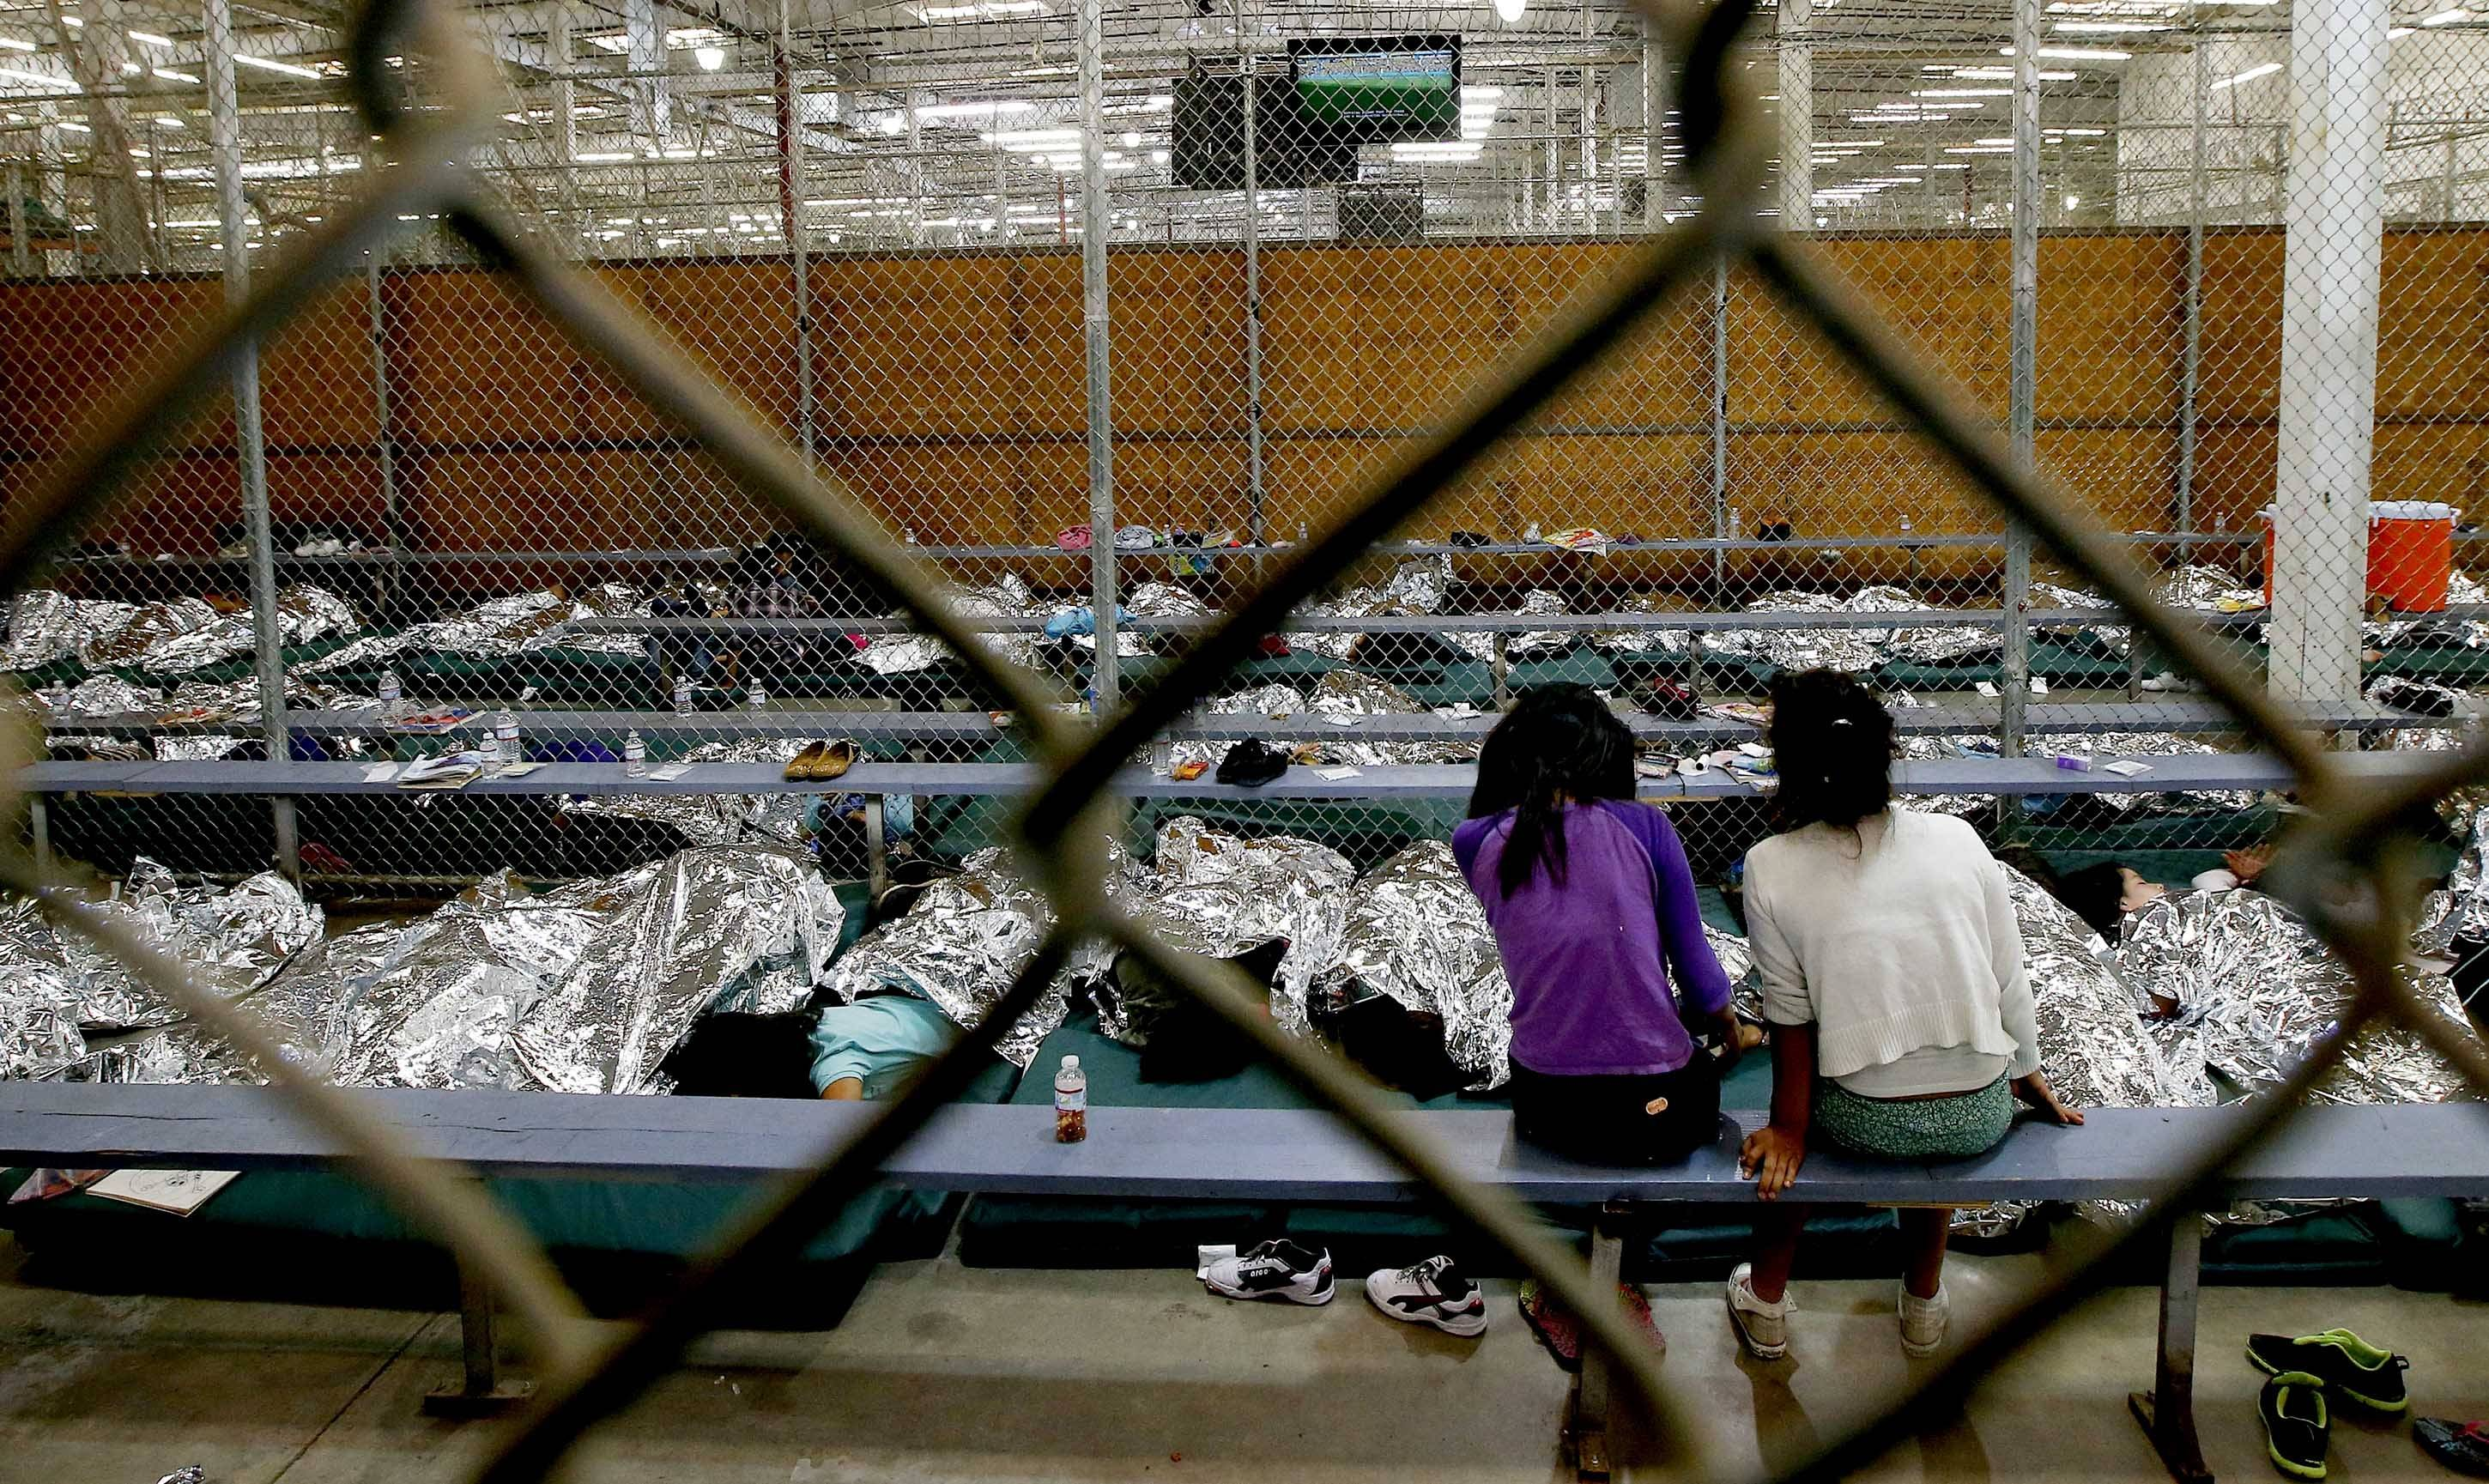 Two young girls watch a World Cup soccer match Wednesday on a television from their holding area where hundreds of mostly Central American immigrant children are being processed and held at the U.S. Customs and Border Protection Nogales Placement Center Nogales, Ariz.